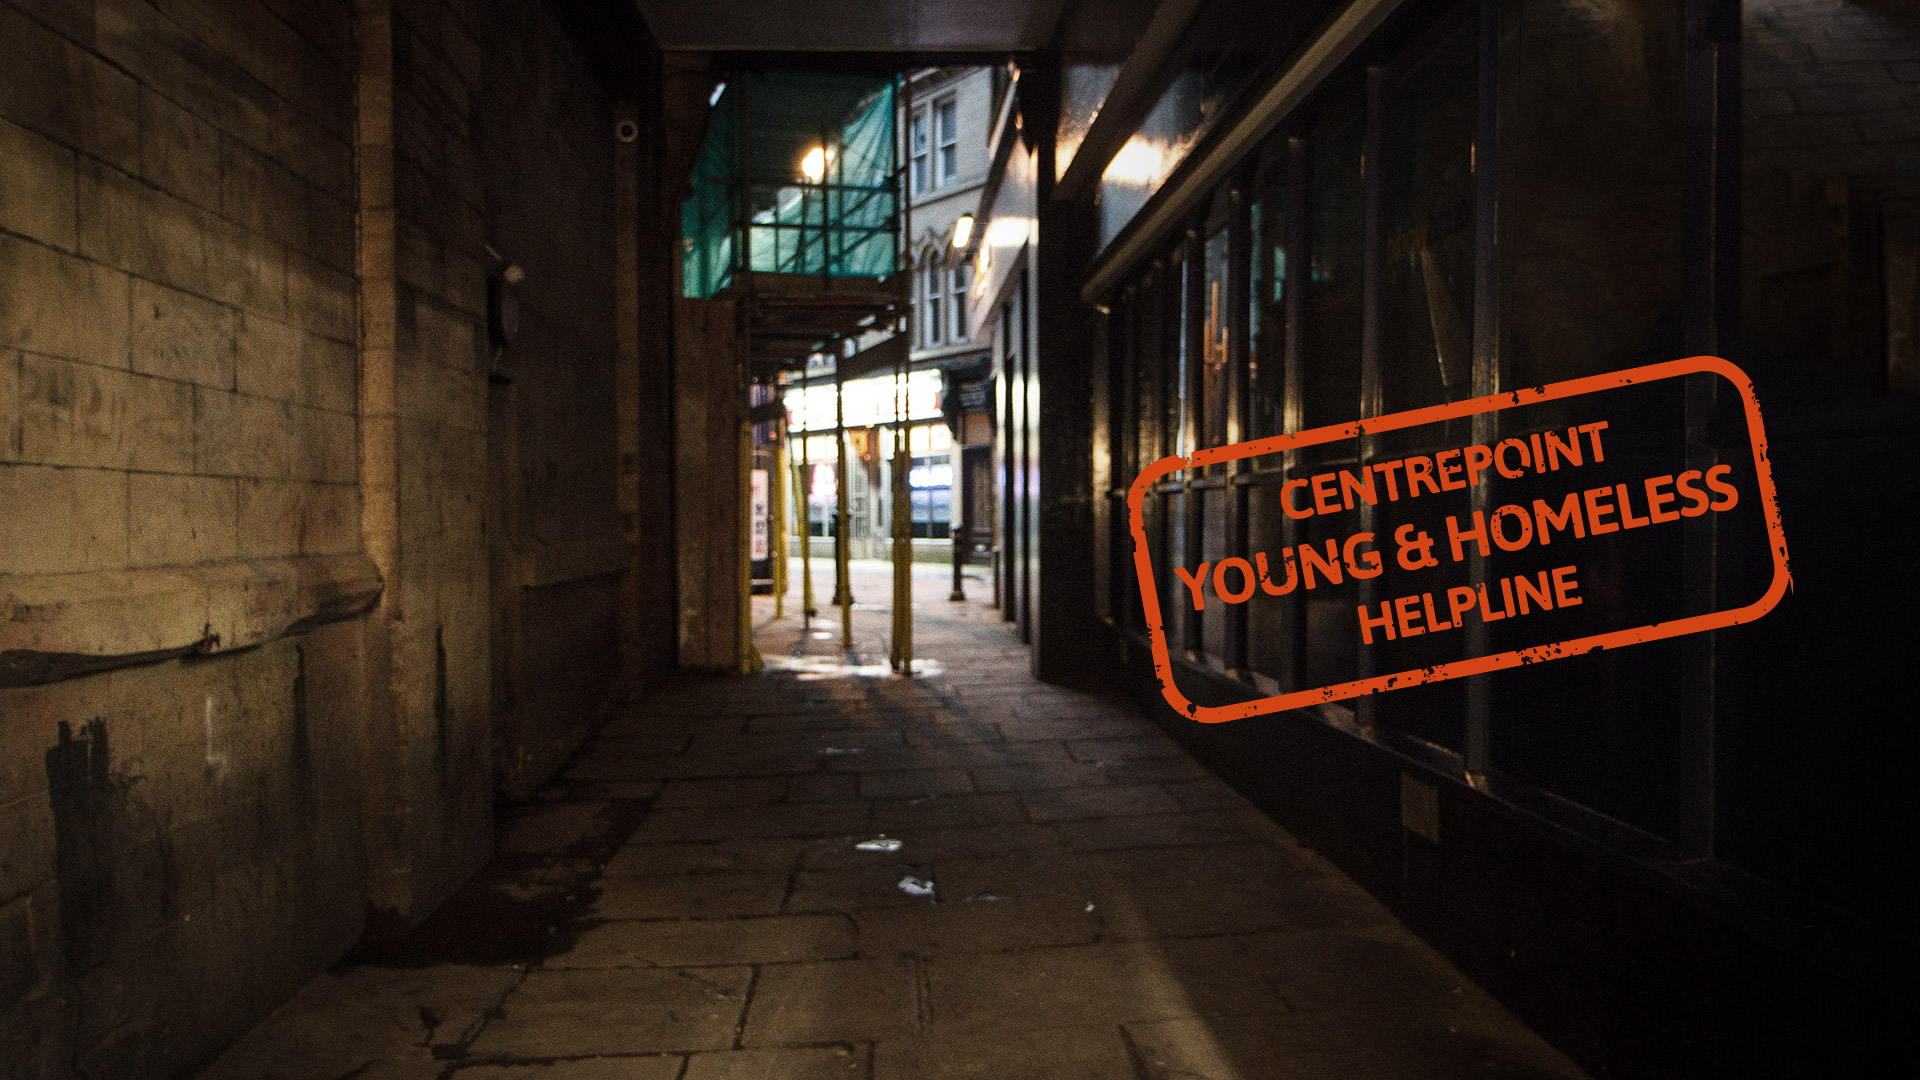 Next Sofa Helpline Centrepoint Partners With The Evening Standard To Launch Young